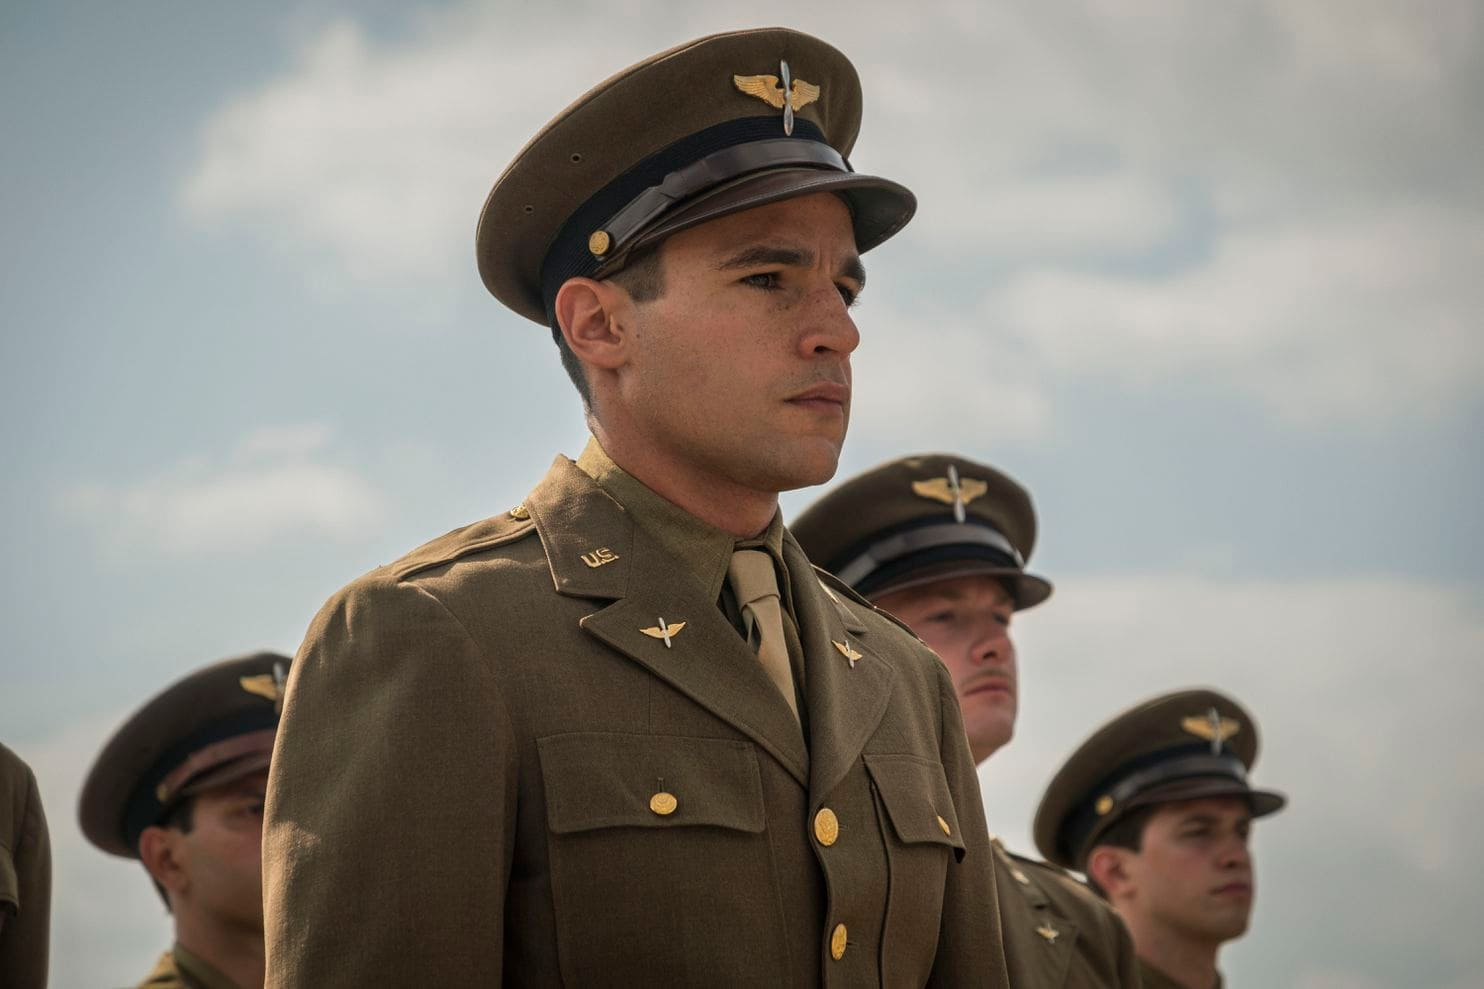 TV Review: Catch-22 Begins in a Nightmare and Spirals All the Way Down | Consequence of Sound